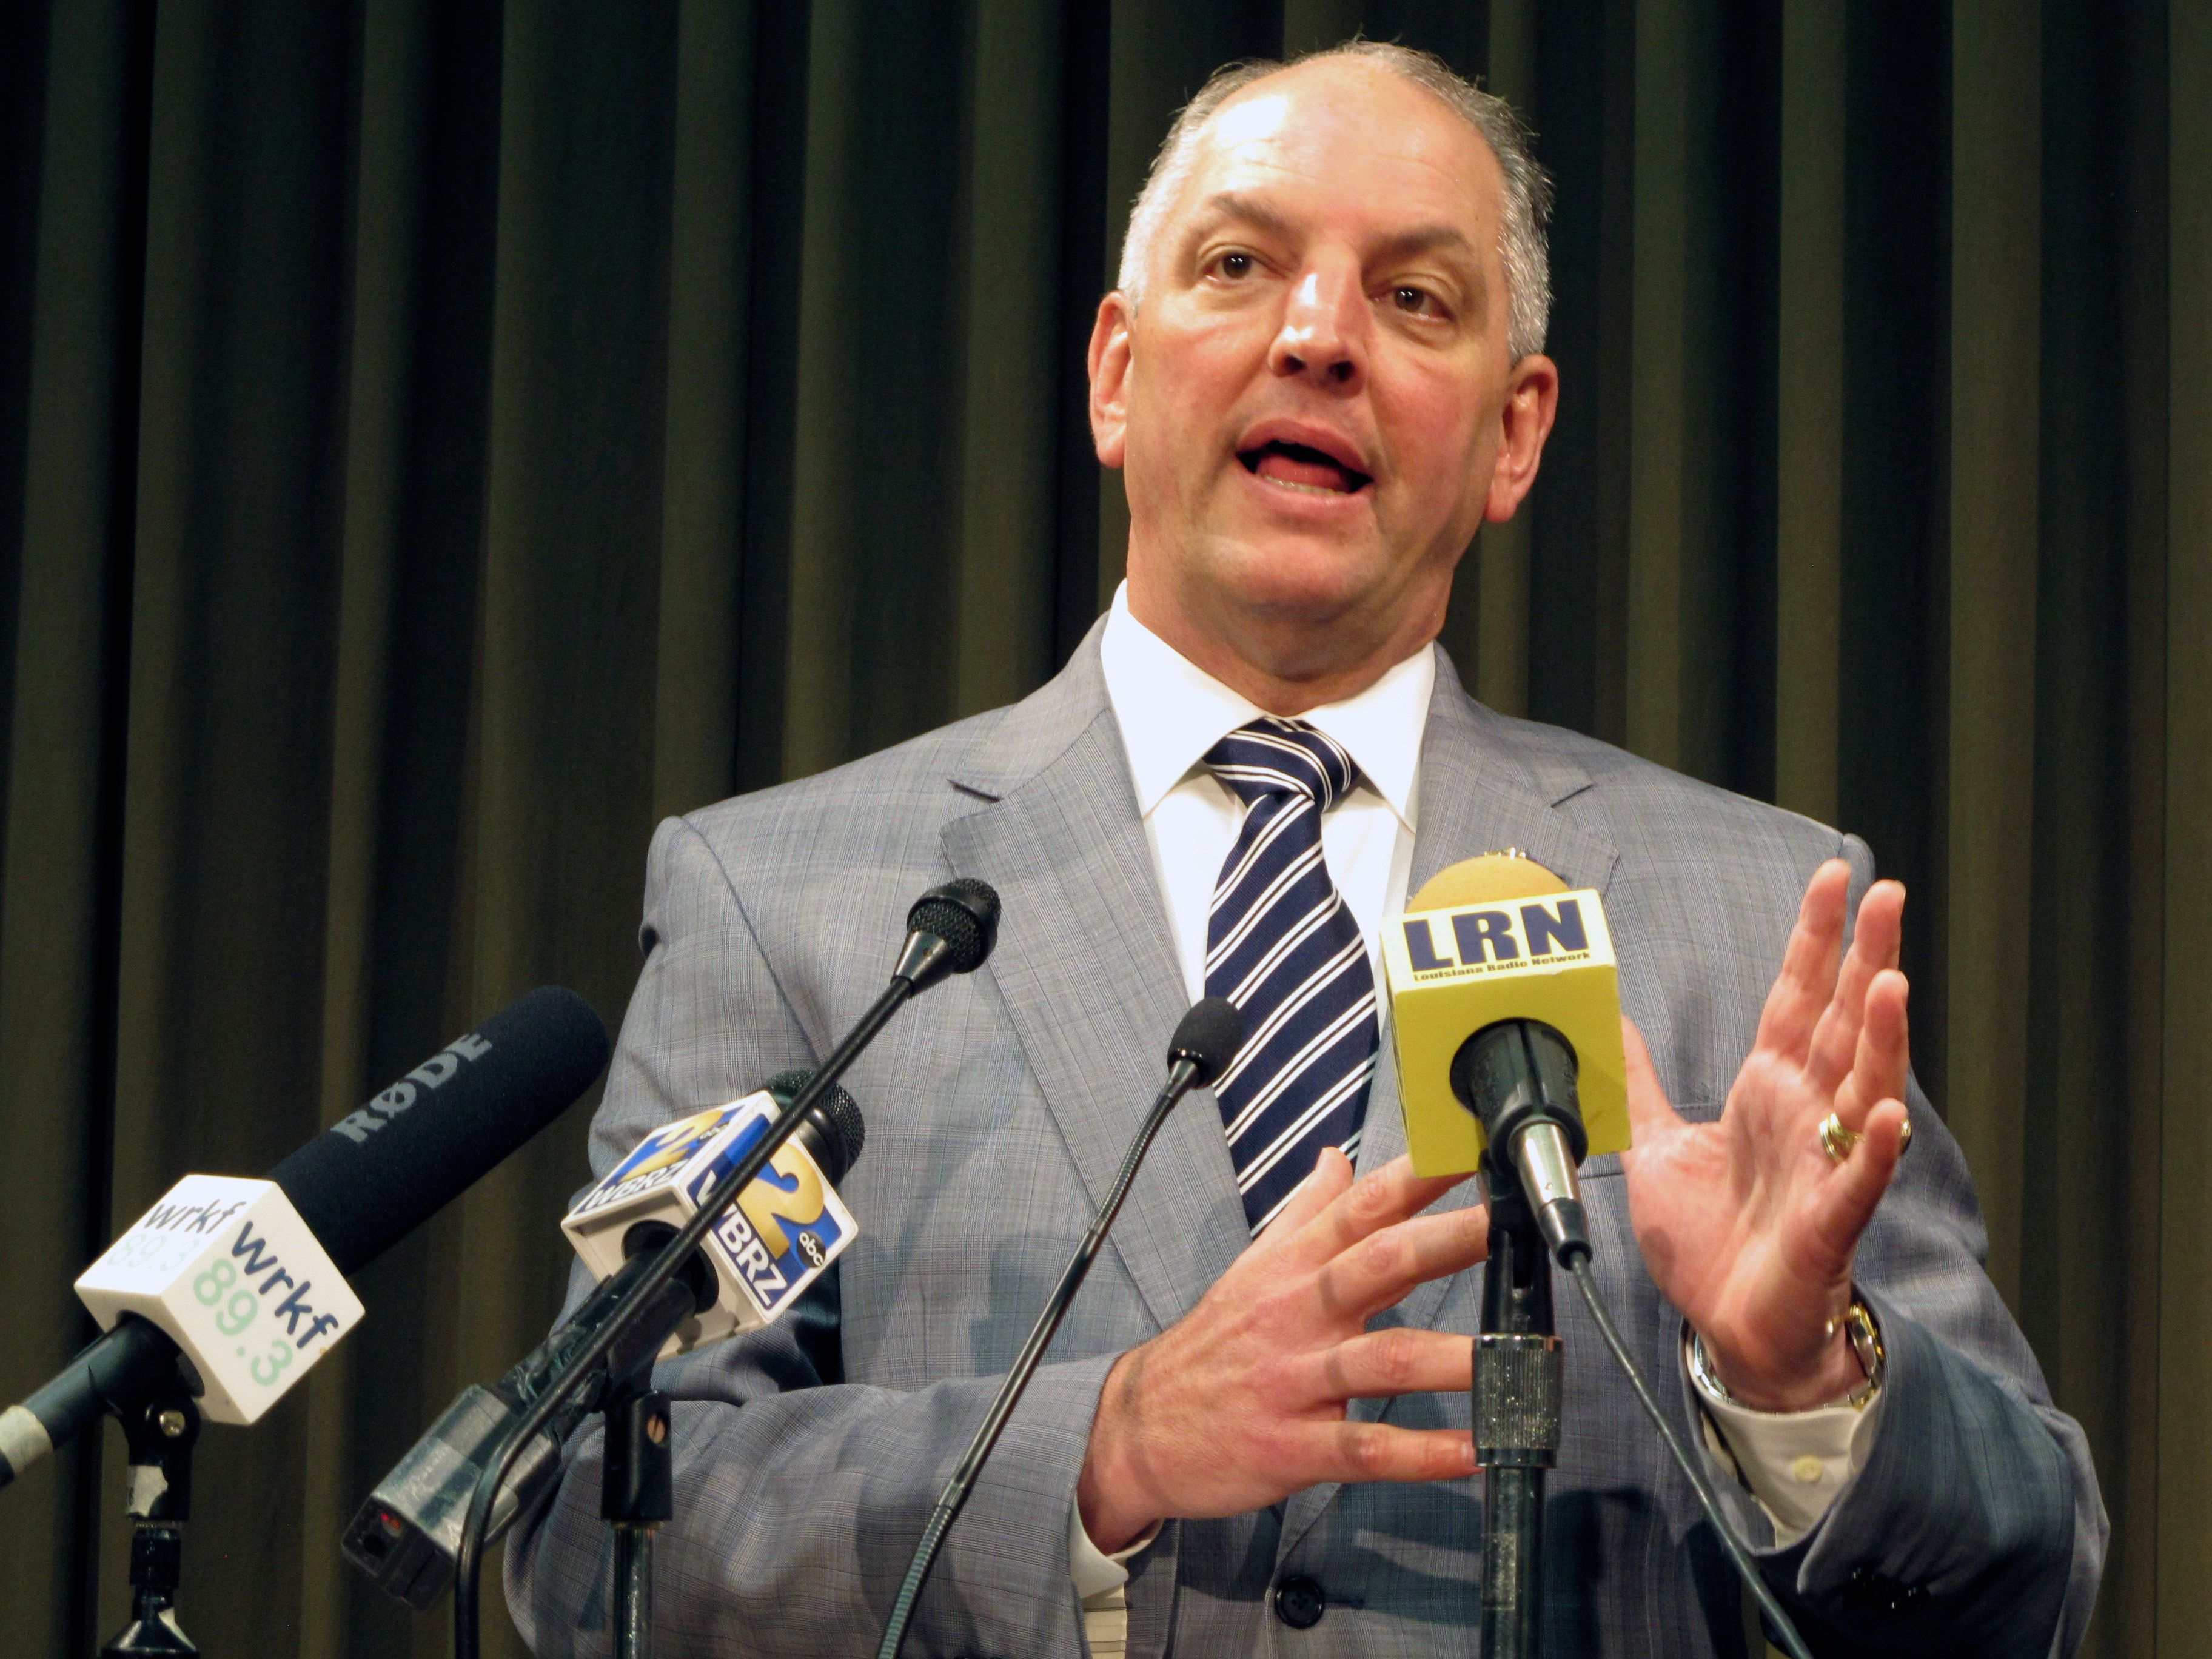 Gov. John Bel Edwards talks about the state's budget and his plans to call a special session for June to try to raise revenue to stave off cuts, on Thursday, May 5, 2016, in Baton Rouge, La. (AP Photo/Melinda Deslatte)